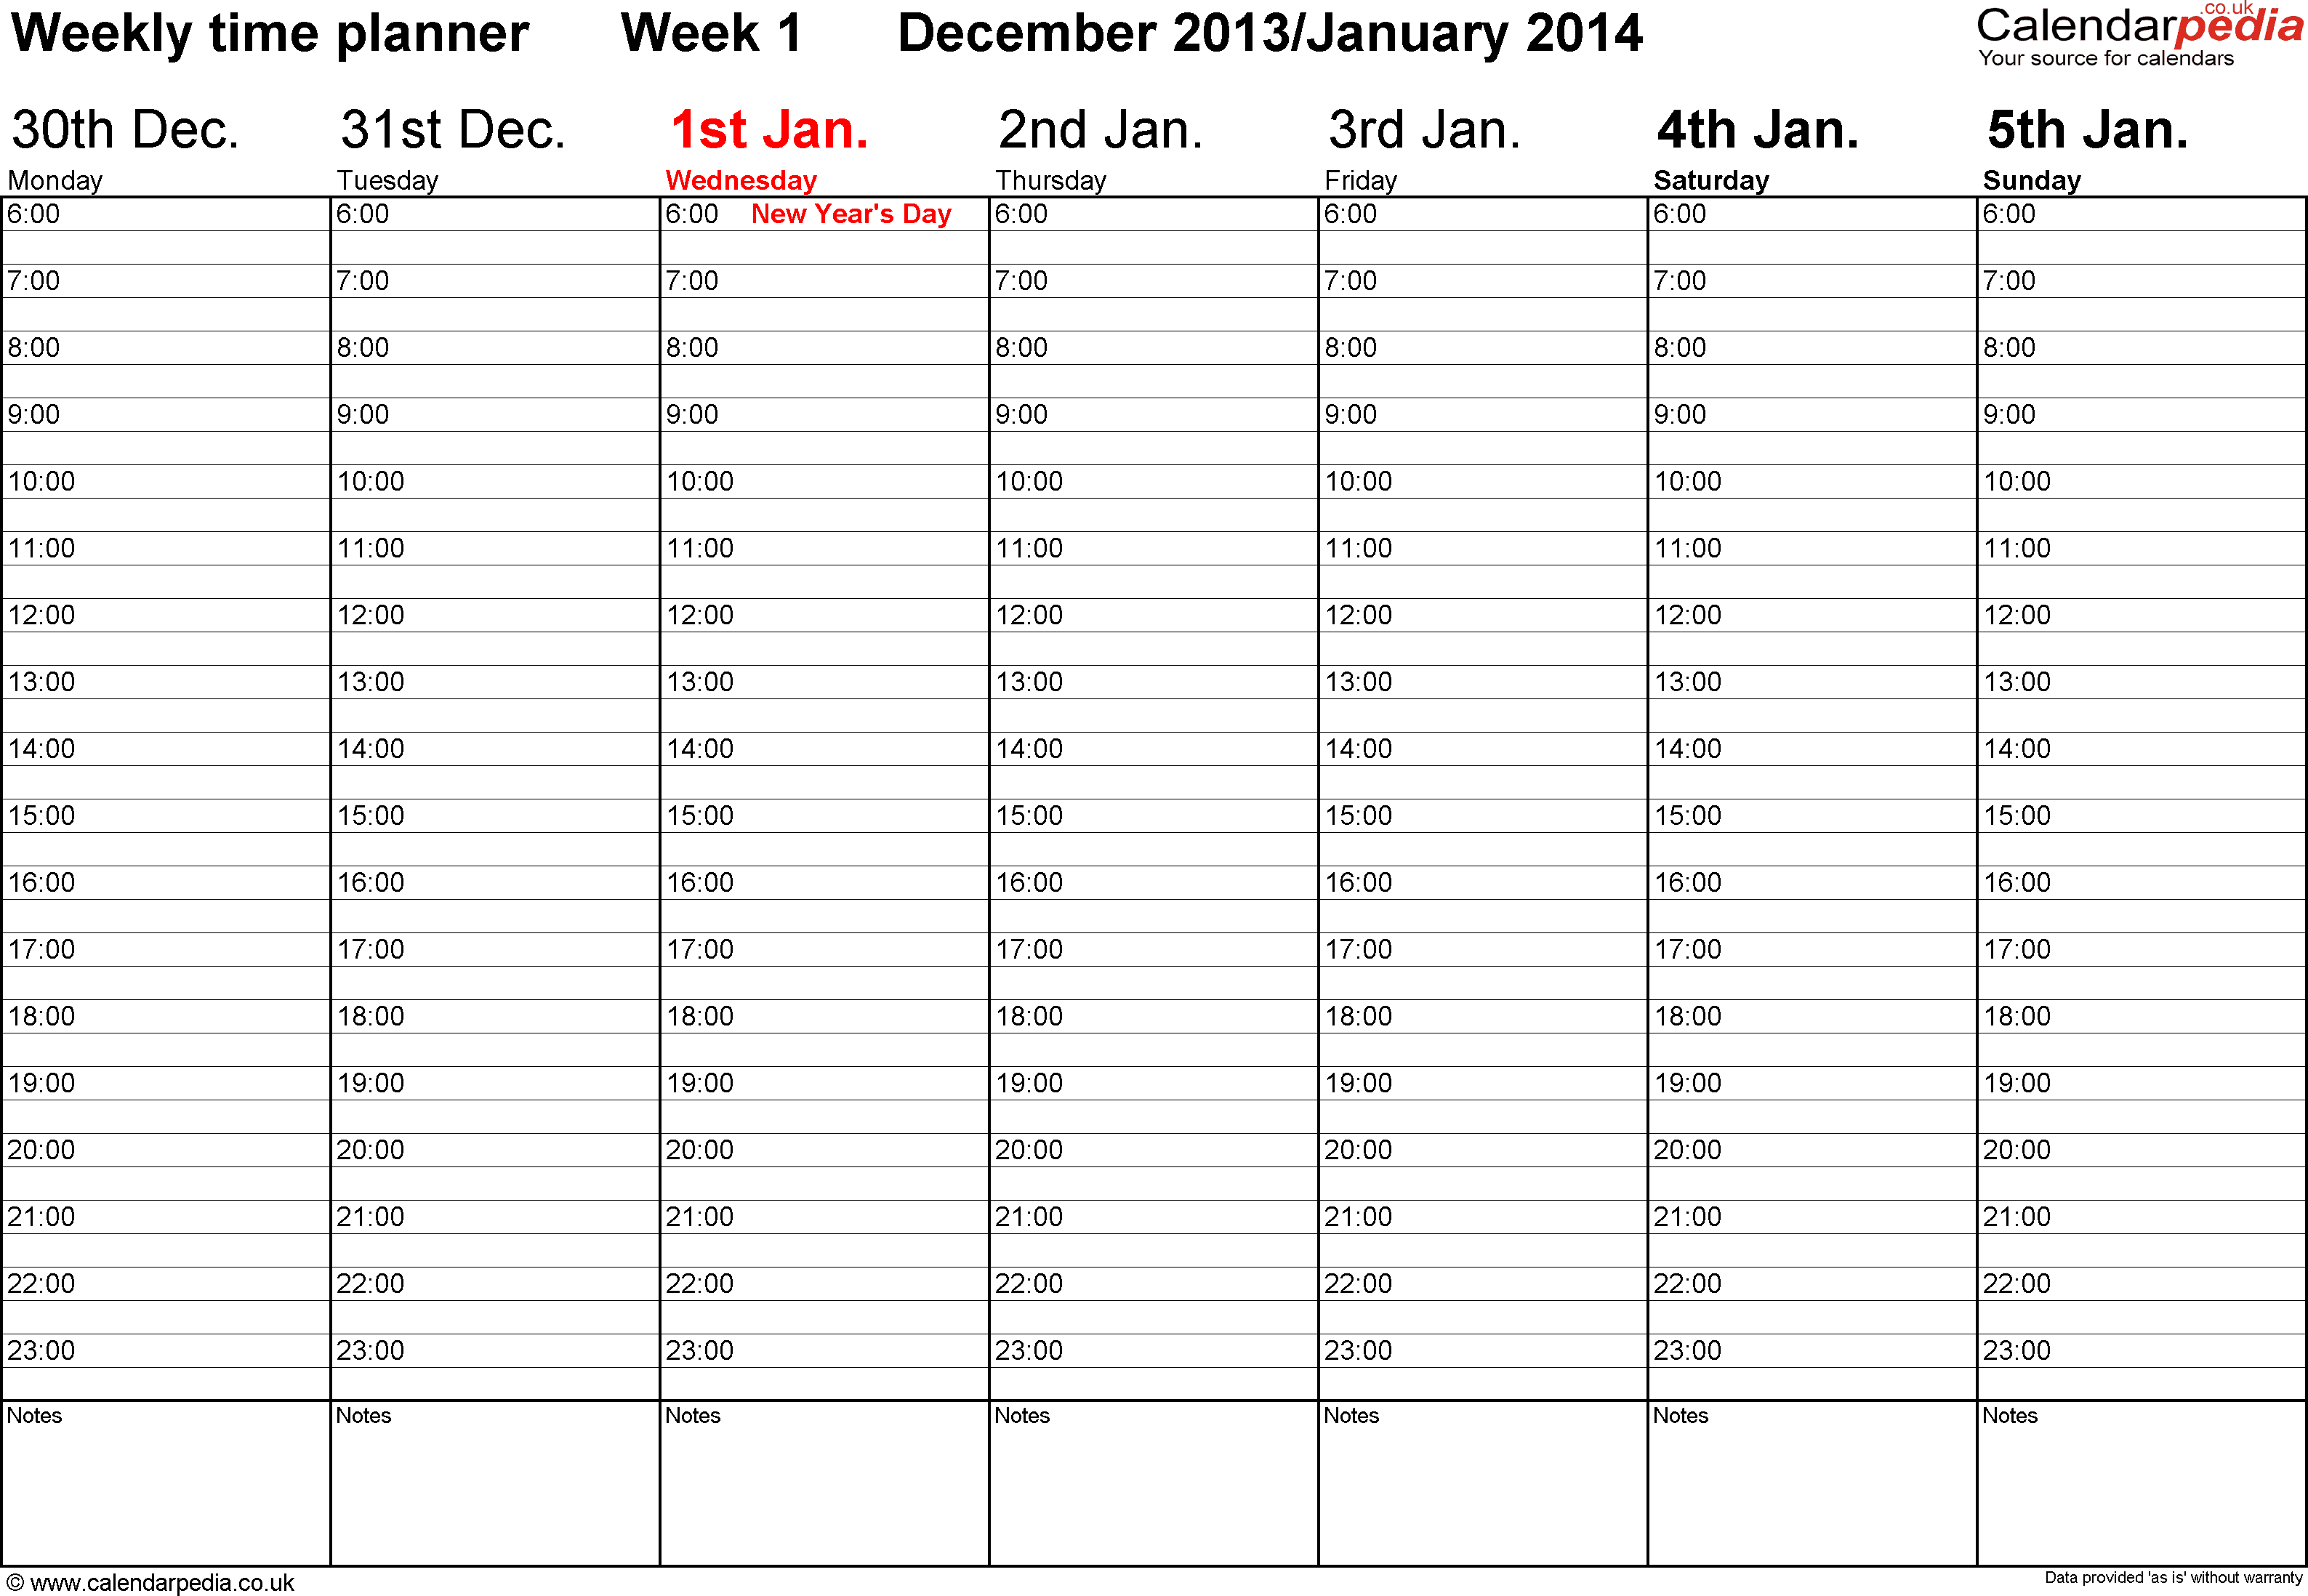 Weekly Calendar 2014 (UK) for PDF